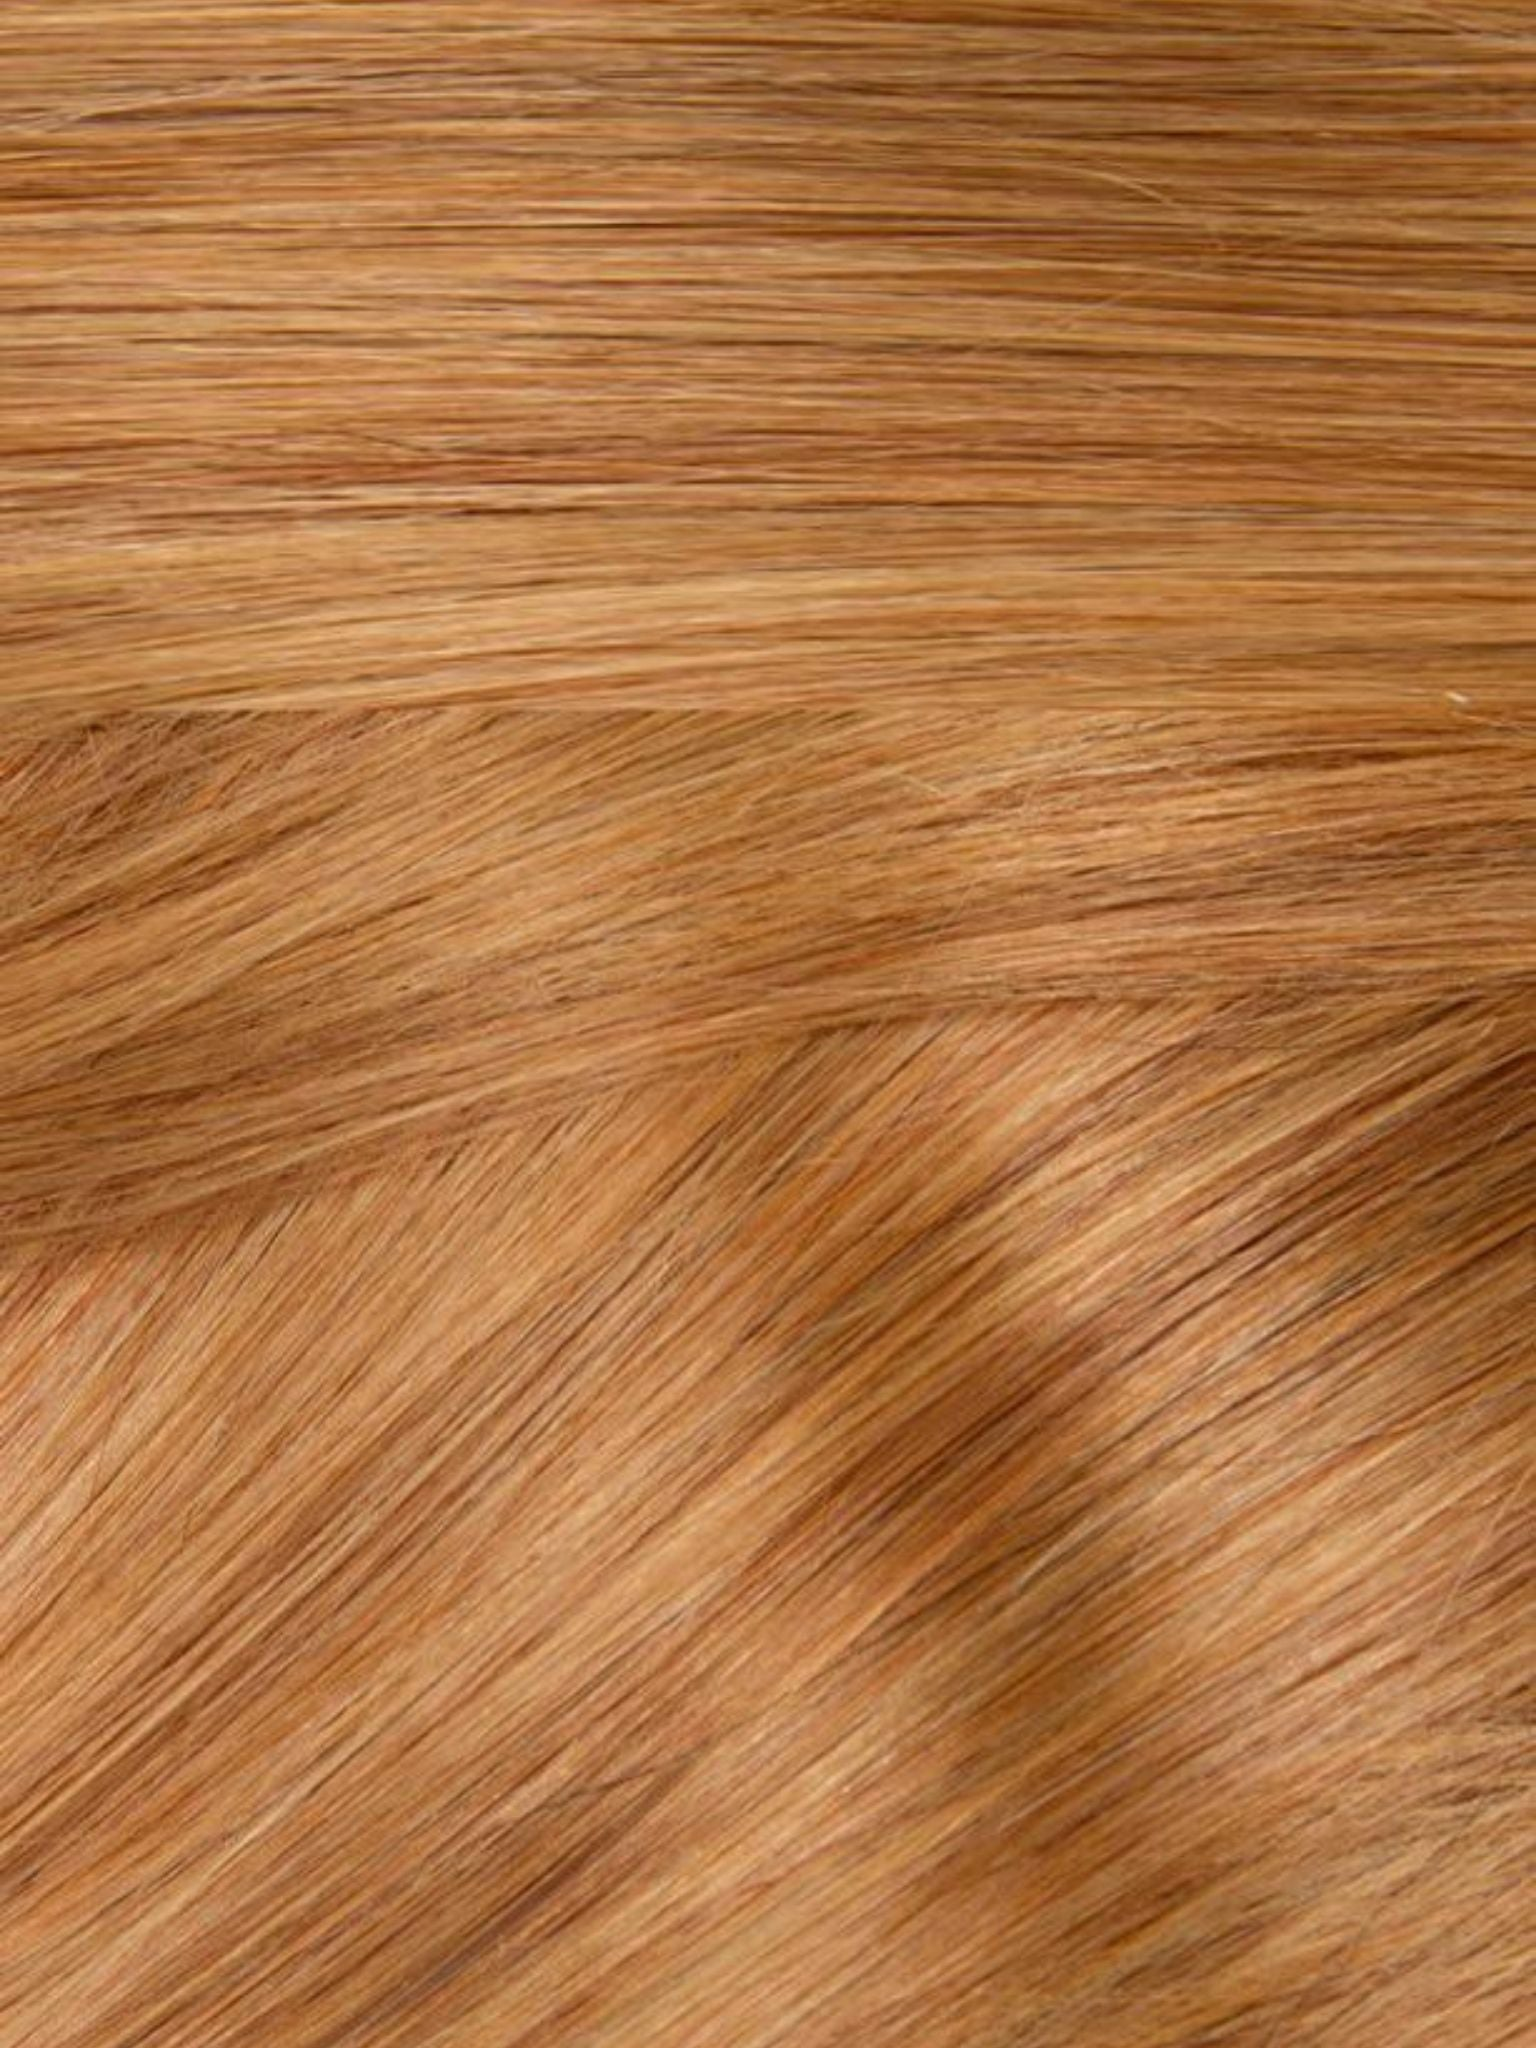 Stick Tip Hair Extensions - Sunkissed Blonde #27